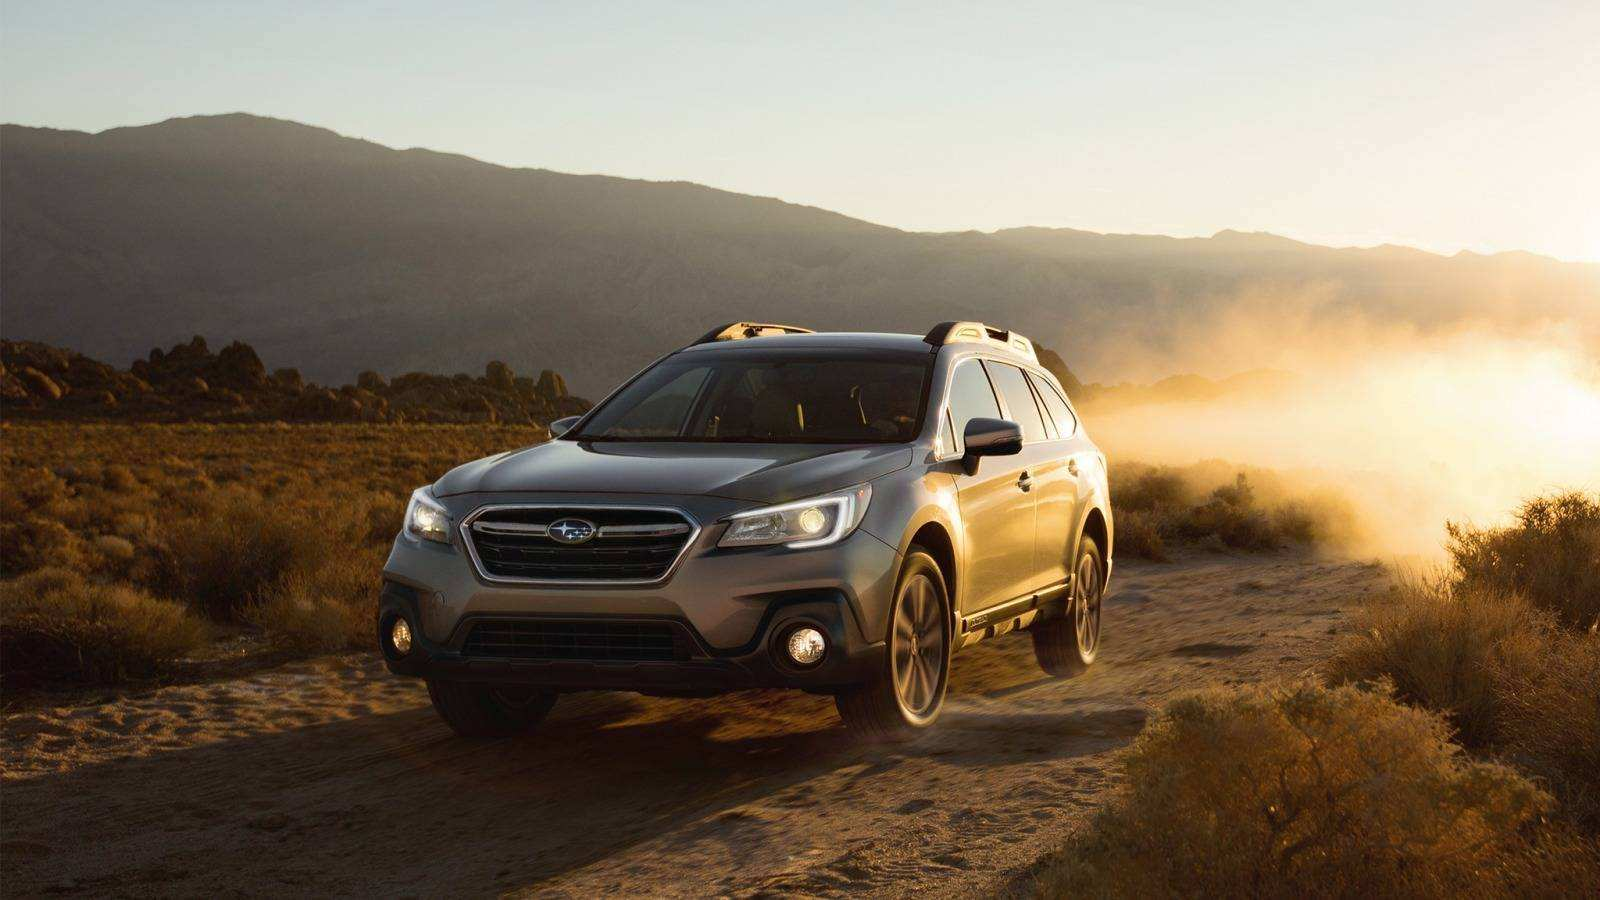 97 Great Best Subaru Outback 2019 Canada Review Configurations for Best Subaru Outback 2019 Canada Review